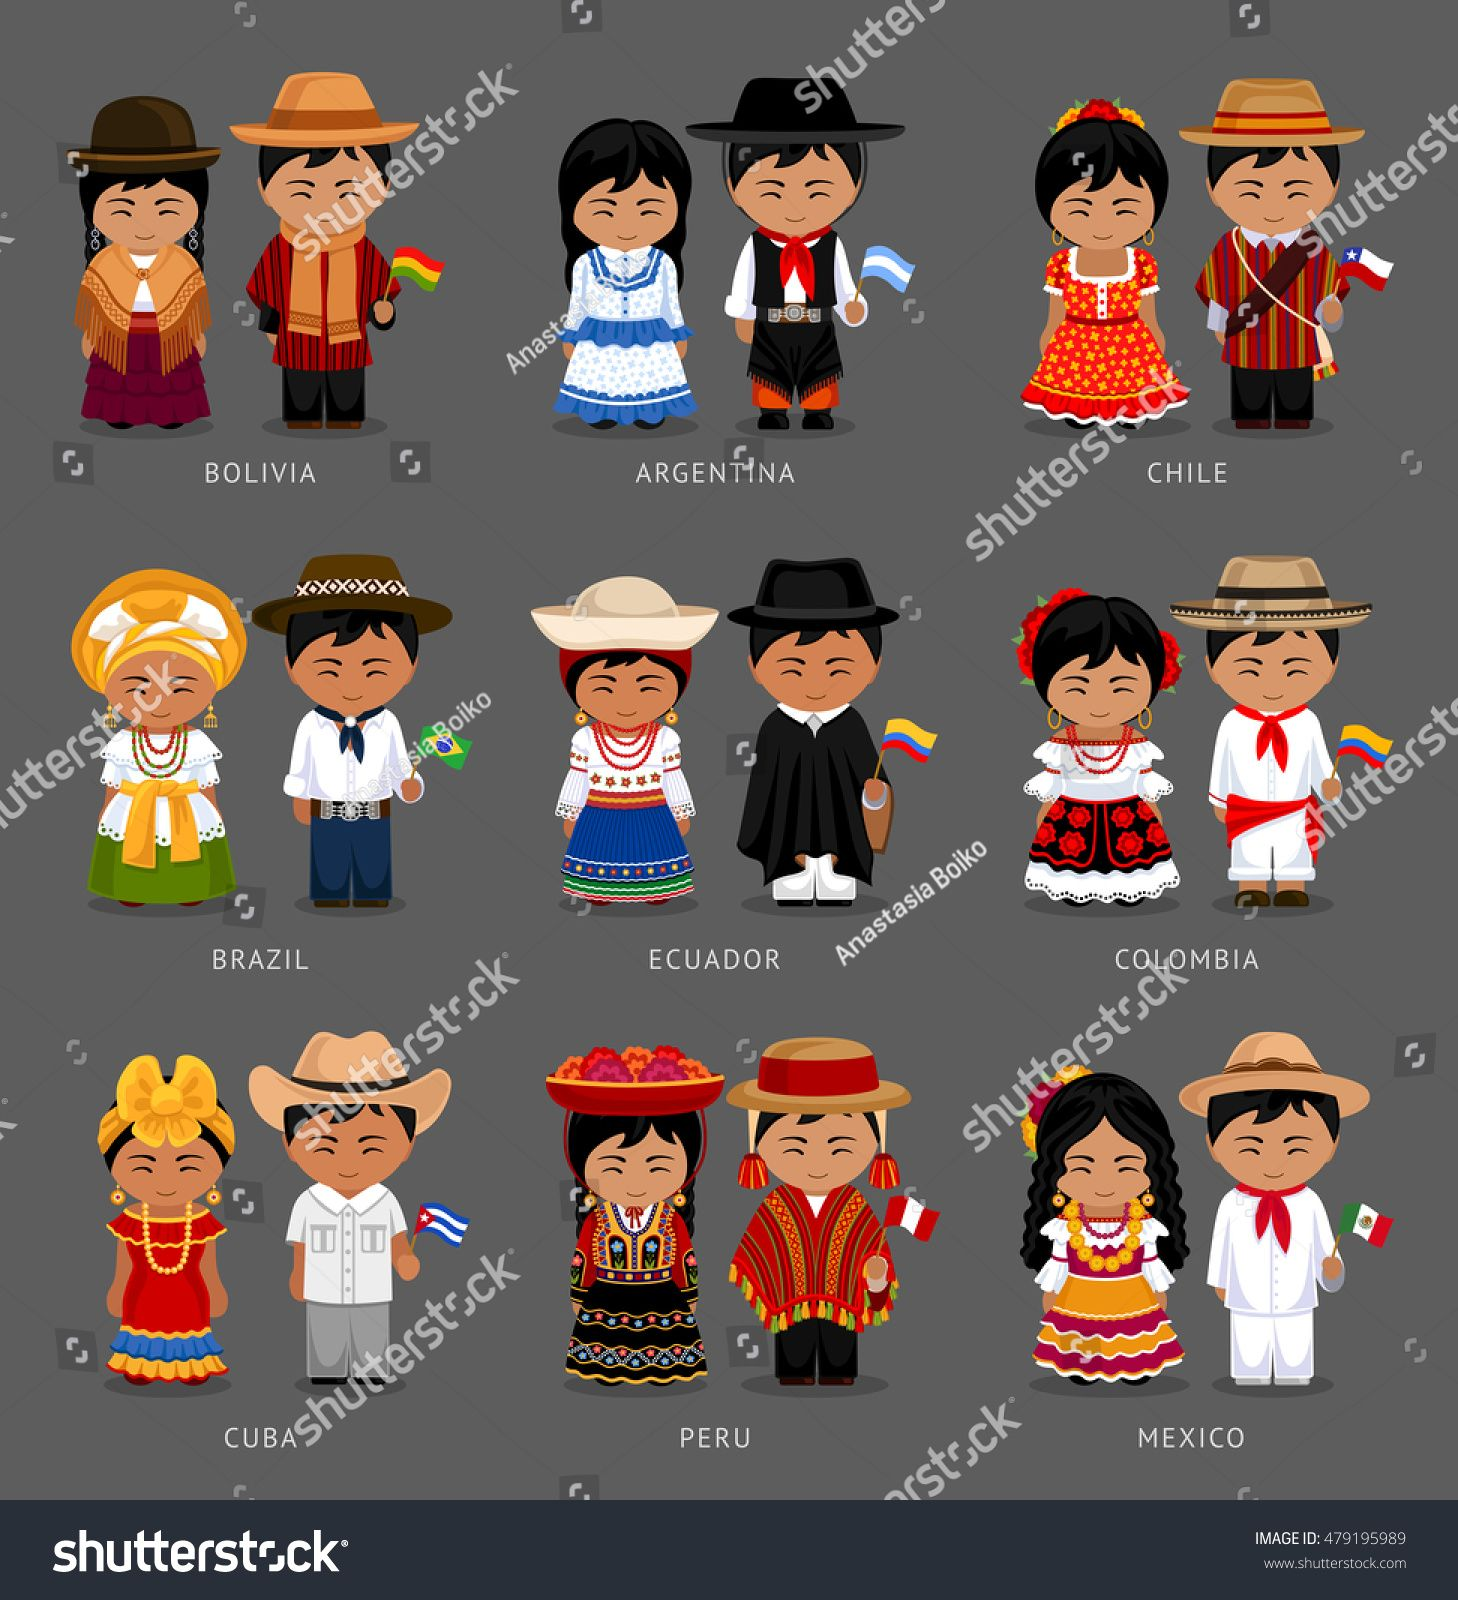 People In National Dress Bolivia Argentina Chile